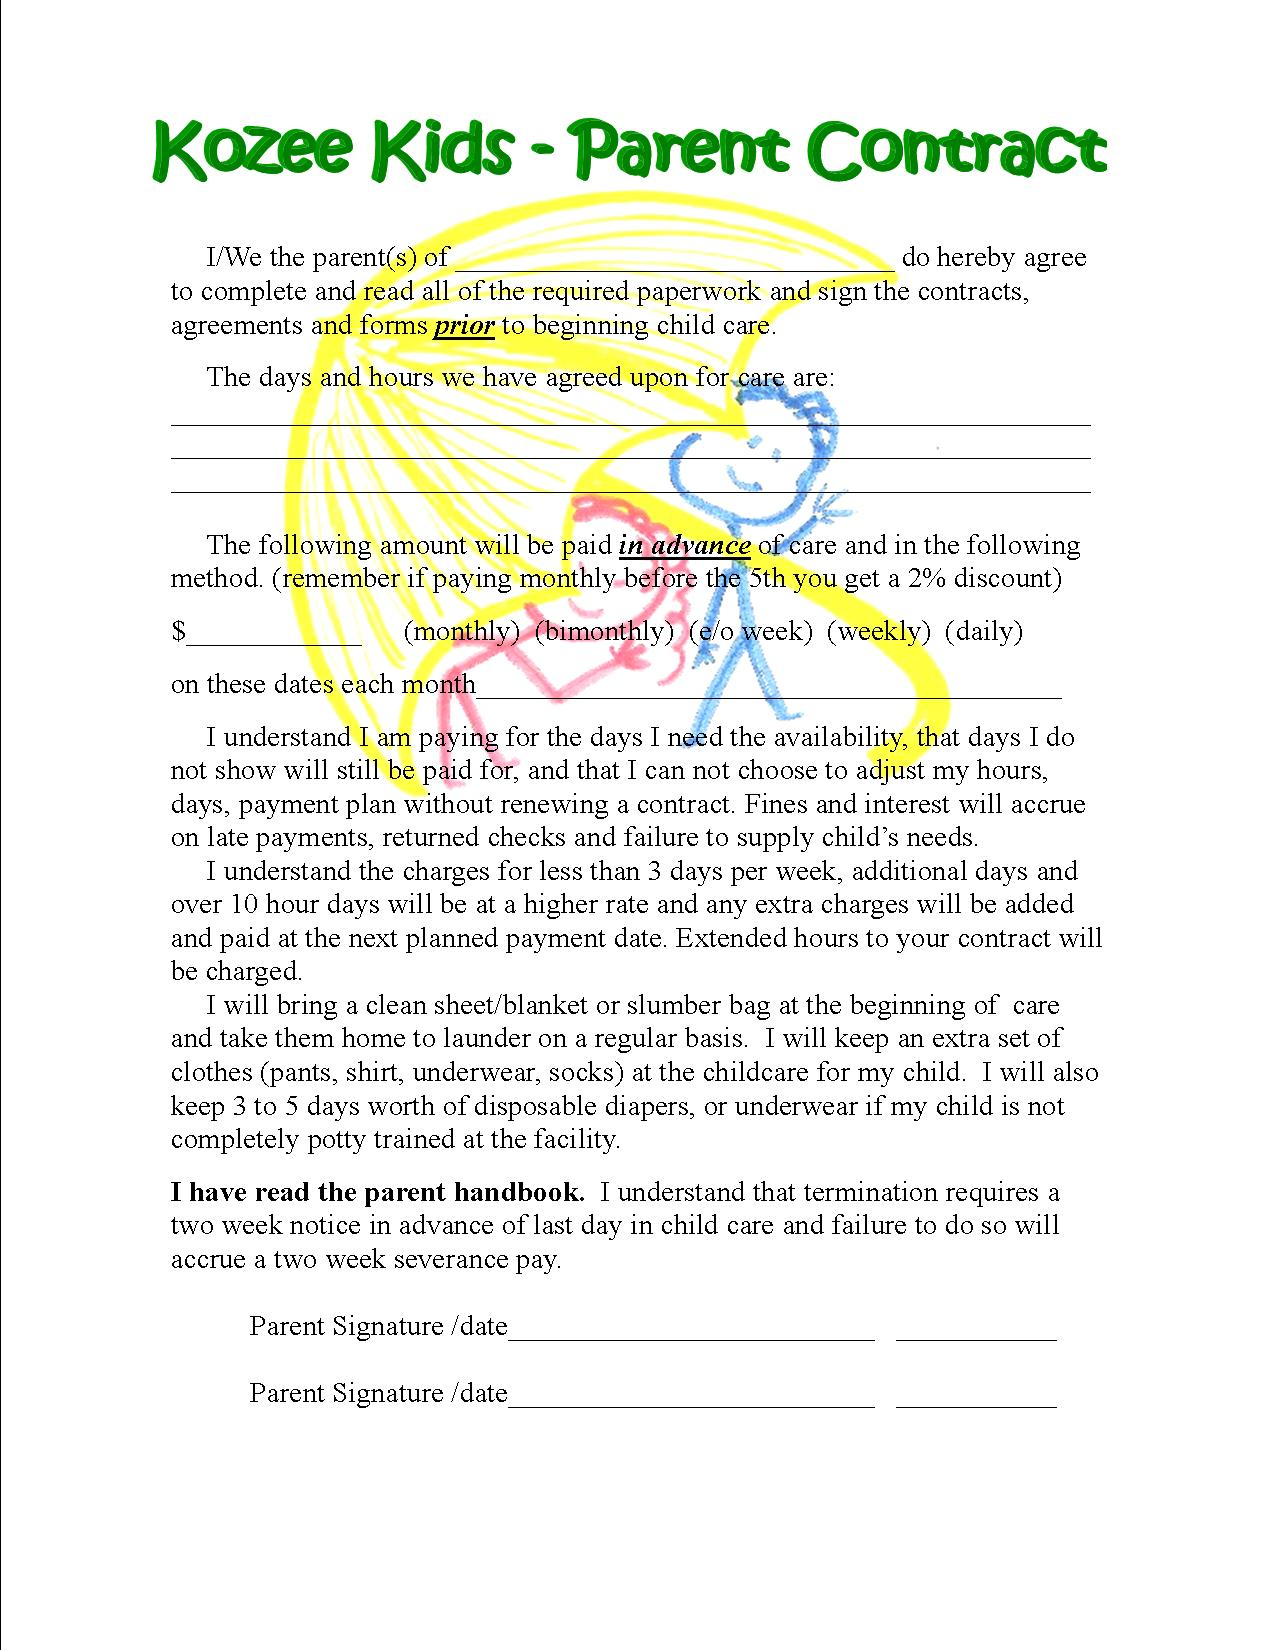 forms for kozee kids licensed child care in stanwood wa